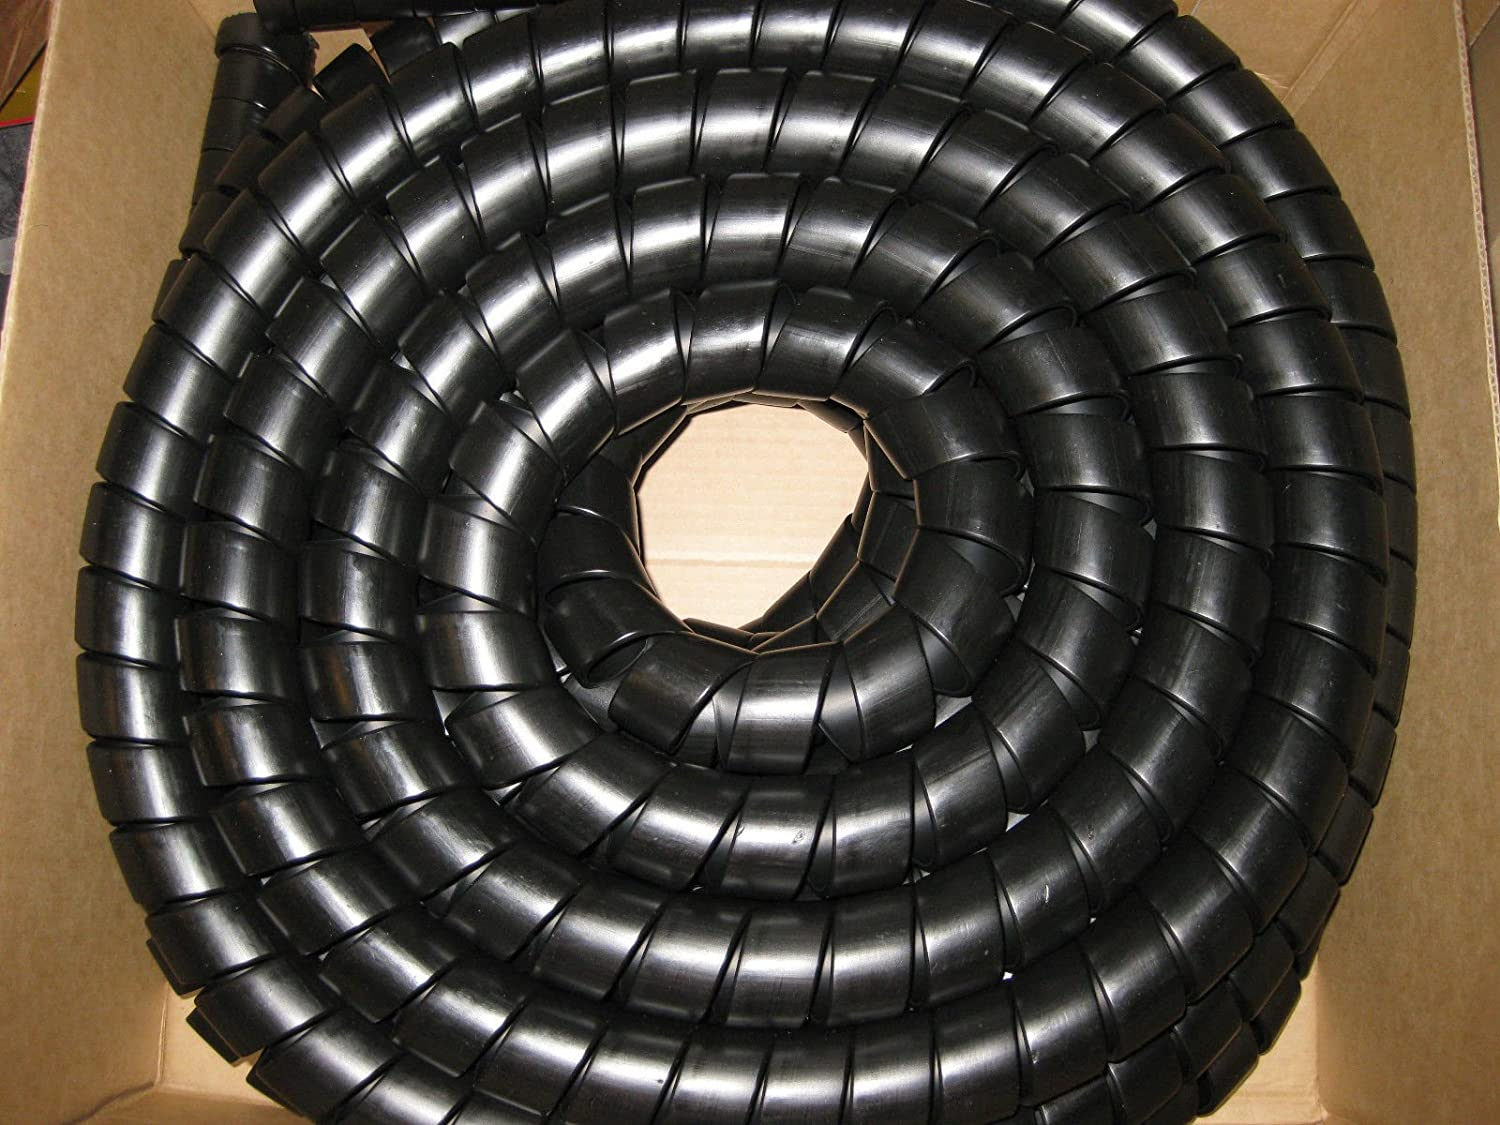 1 meter Hydraulic Hose Spiral Wrap Guard Potection 36-45mm JCB Forestry Tractor digger